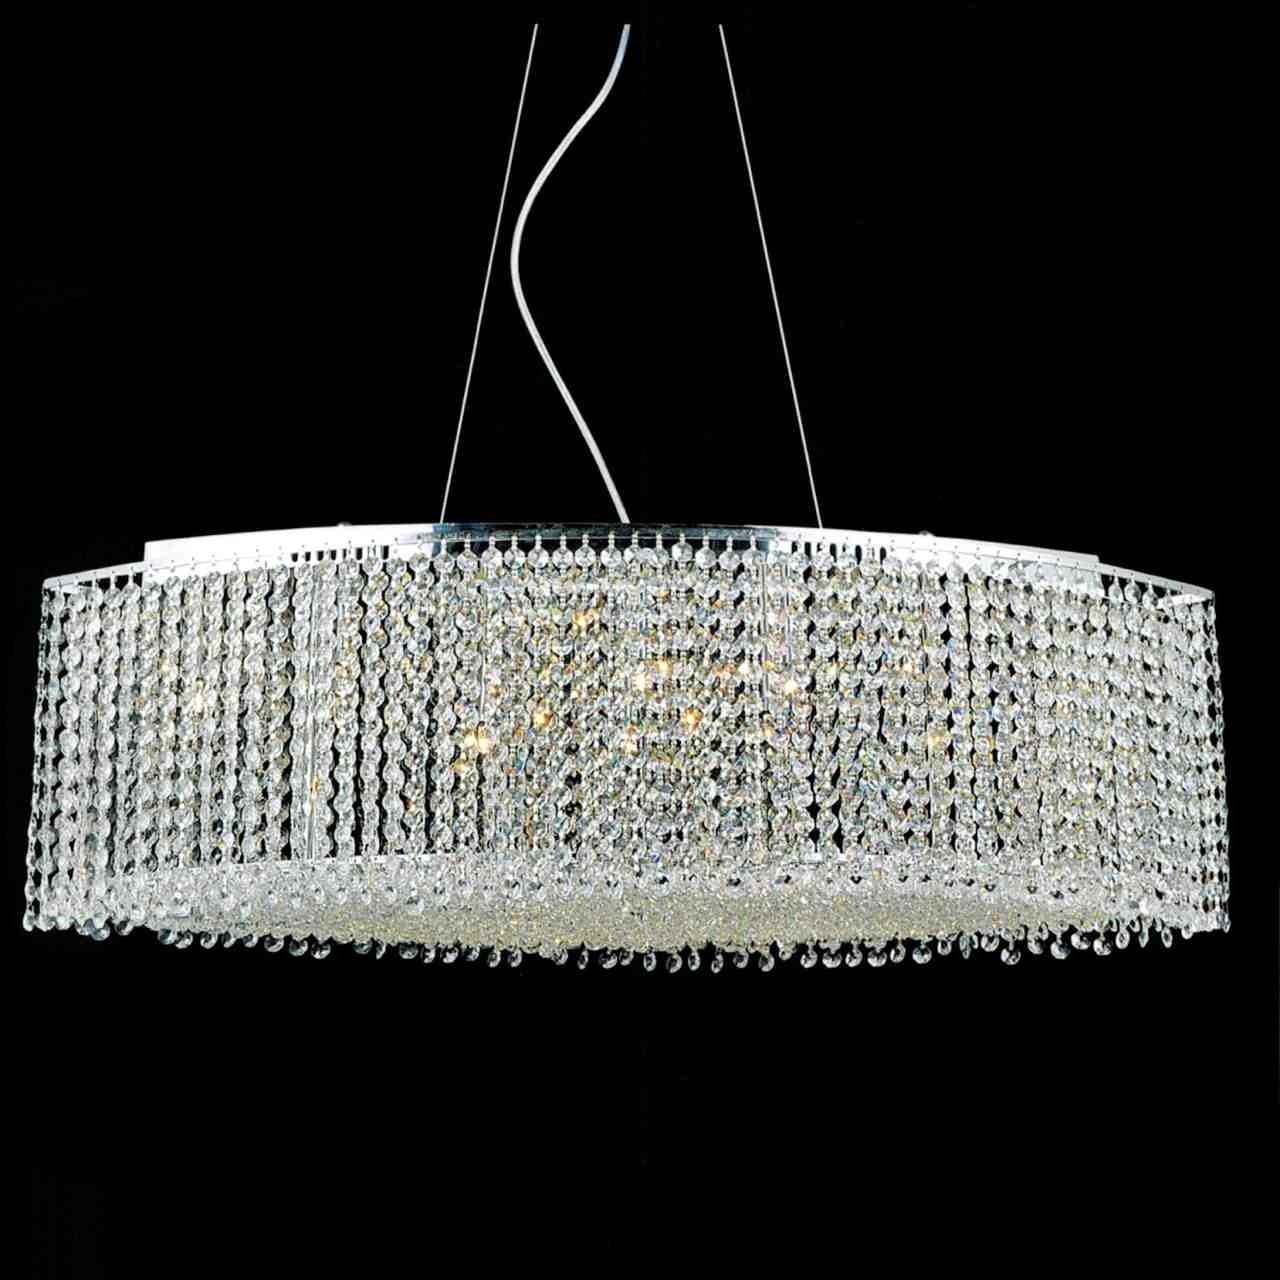 Brizzo Lighting Stores 35 Rainbow Modern Linear Crystal With Regard To Chrome And Crystal Chandeliers (Image 9 of 25)